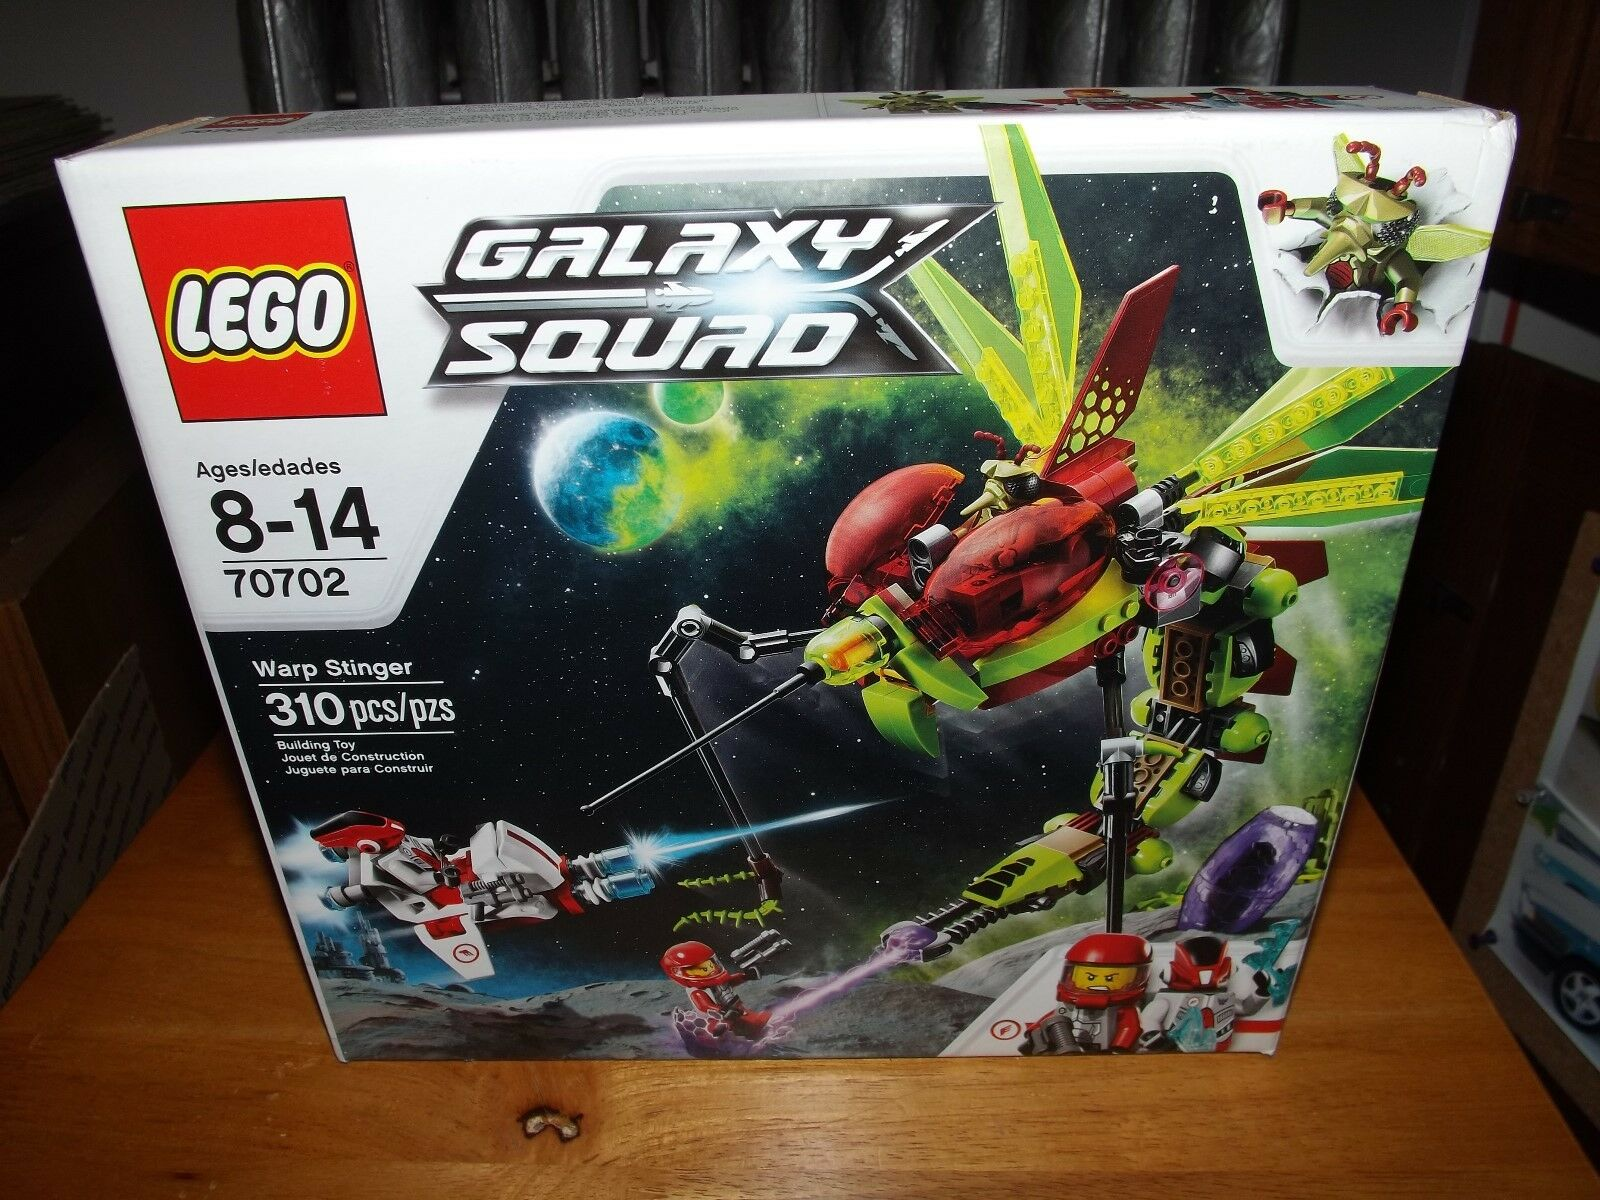 LEGO GALAXY SQUAD, WARP STINGER, WITH 3 MINI FIGS, KIT NEW IN BOX, 2013